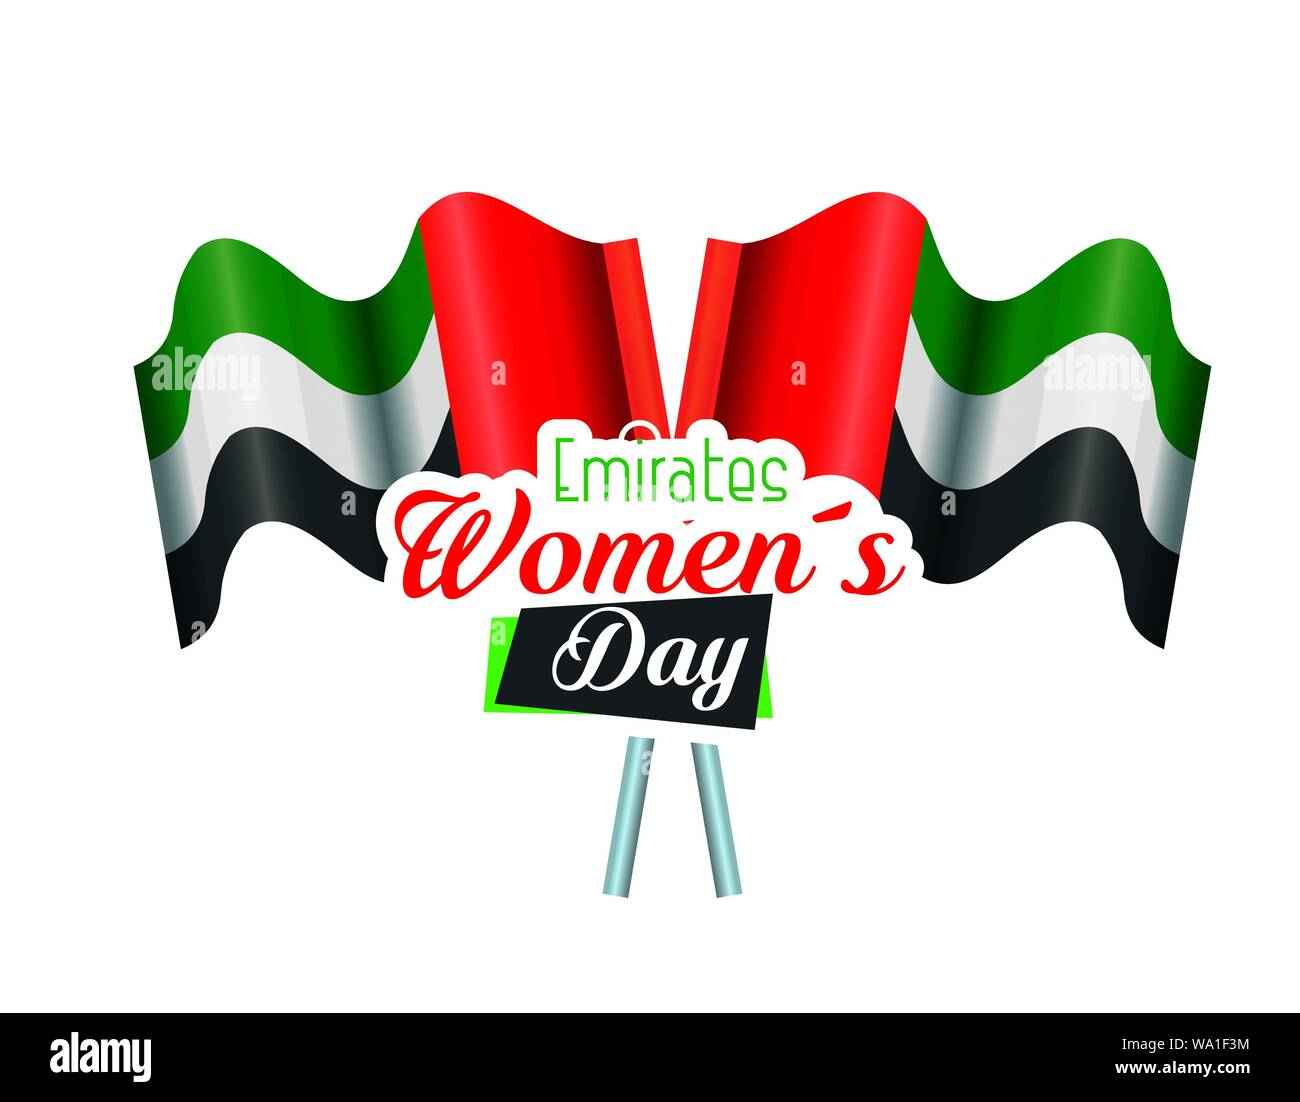 national flags to traditional pemirates womens day Stock Vector